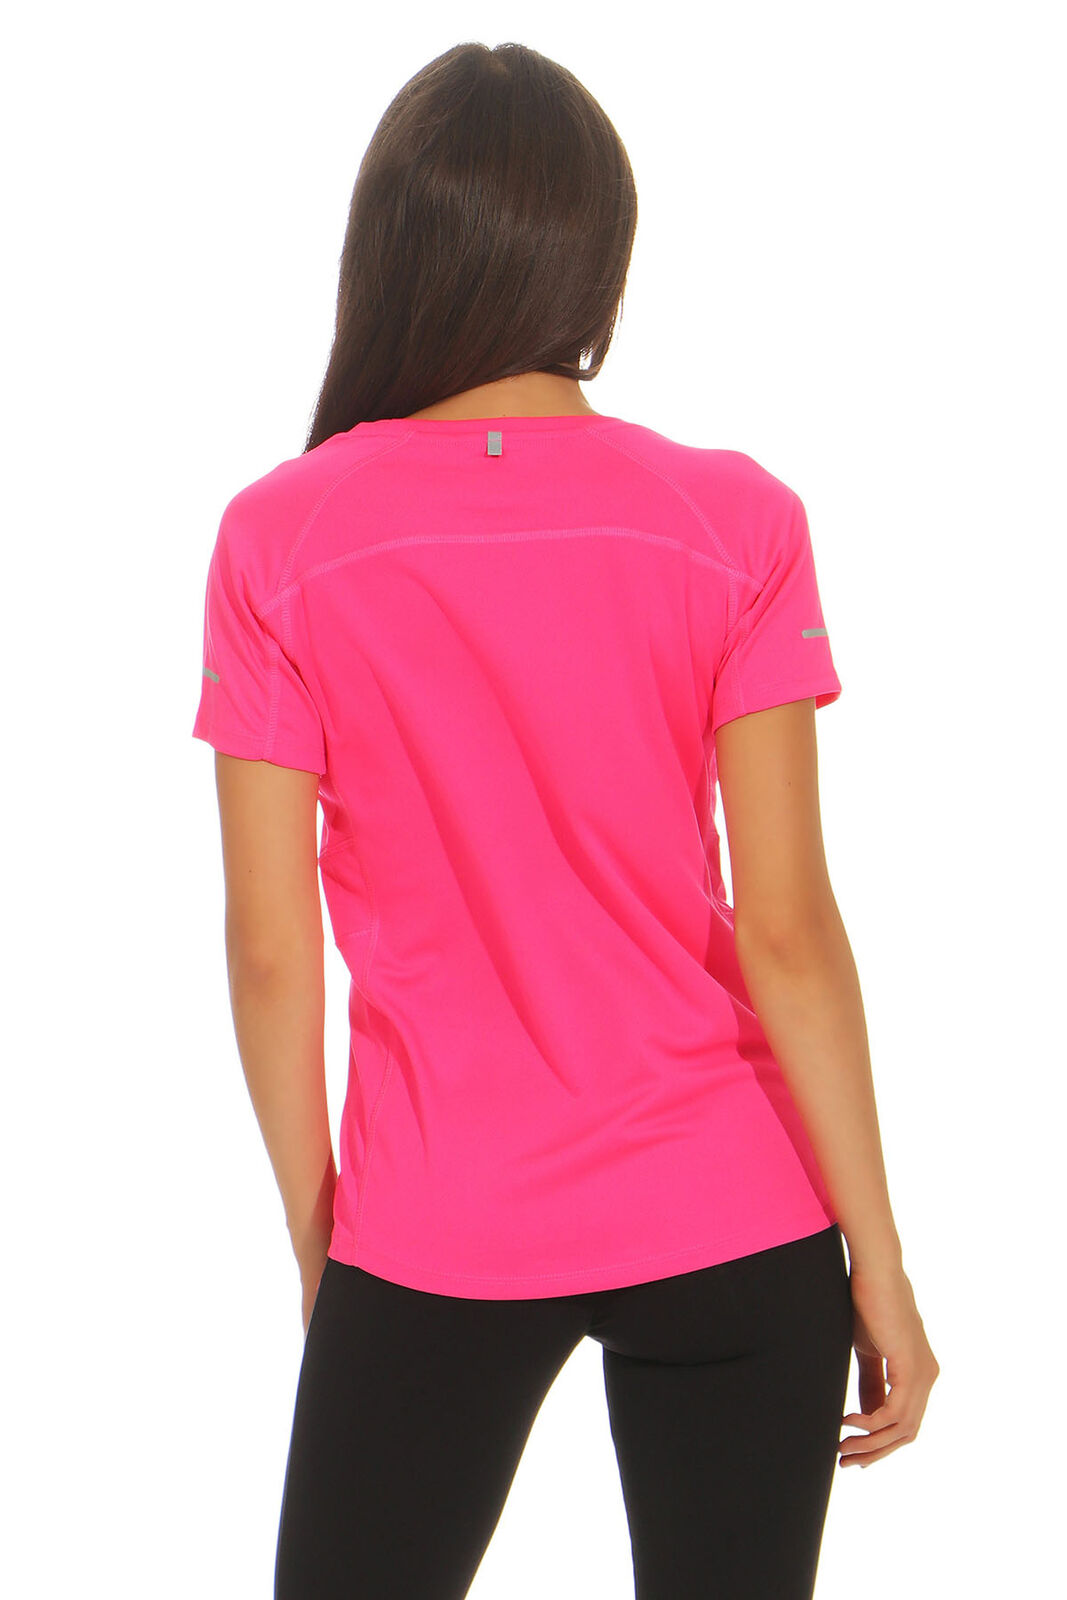 Damen Funktionsshirt Sport T-Shirt Fitness Running Atmungsaktiv Funktions Shirt